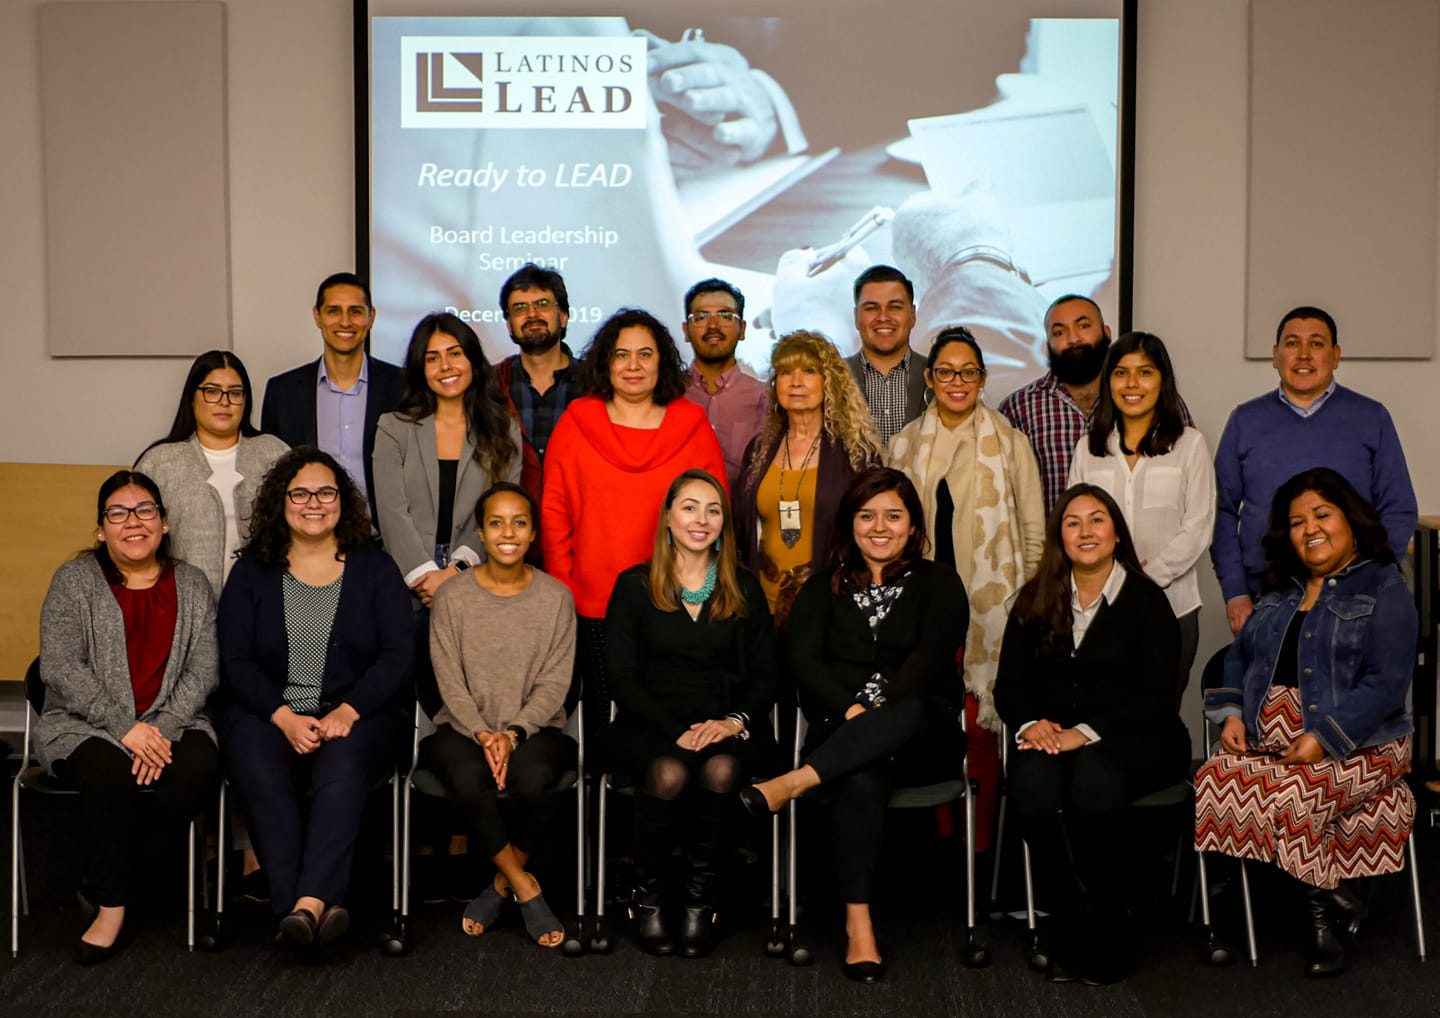 Young women and men smiling, in professional attire, grouped together for a photograph after a Latinos LEAD event